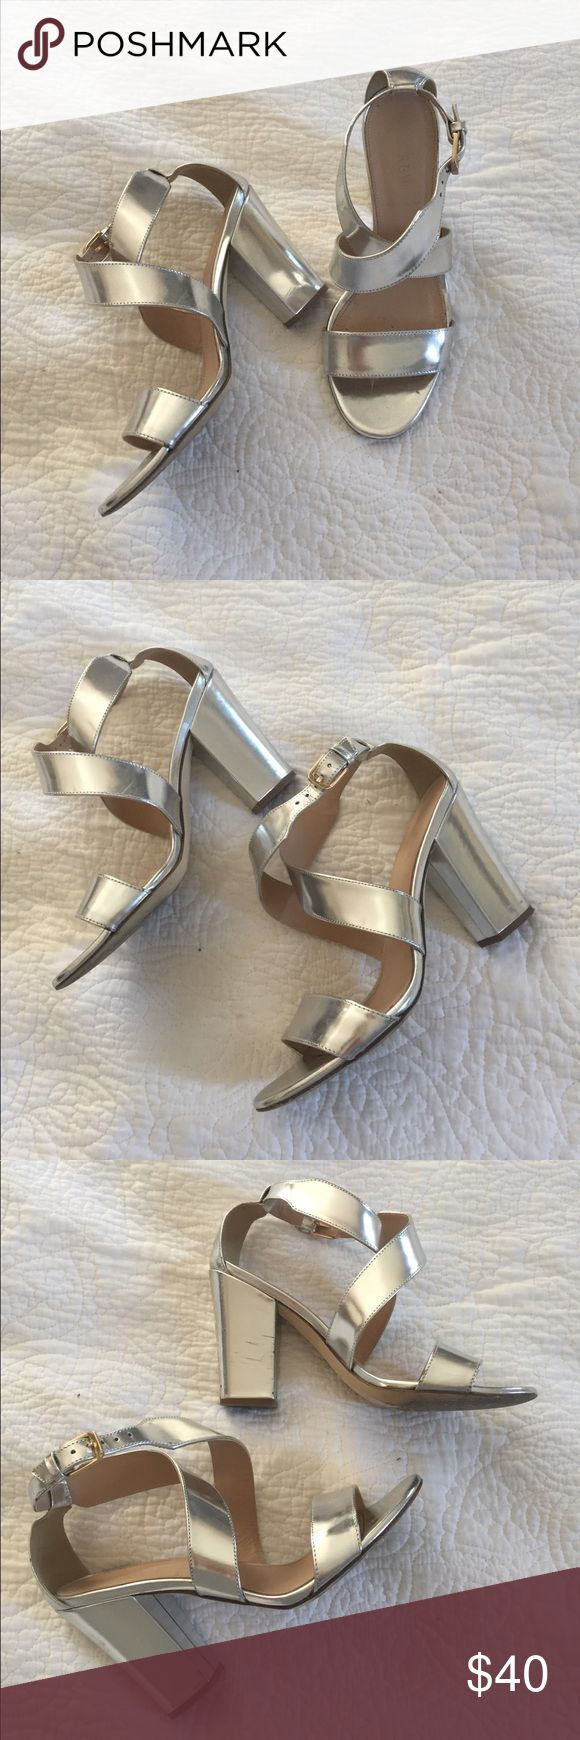 J.crew metallic silver sandal heels 7 This is a pair of J.Crew metallic silver high heel sandals size 7... worn a few times, with minor scuff marks (see photos) and some wear to soles... otherwise these fit like a dream and go with everything!!! Heel is about 4 inches, but you'd never know it!! J. Crew Shoes Sandals